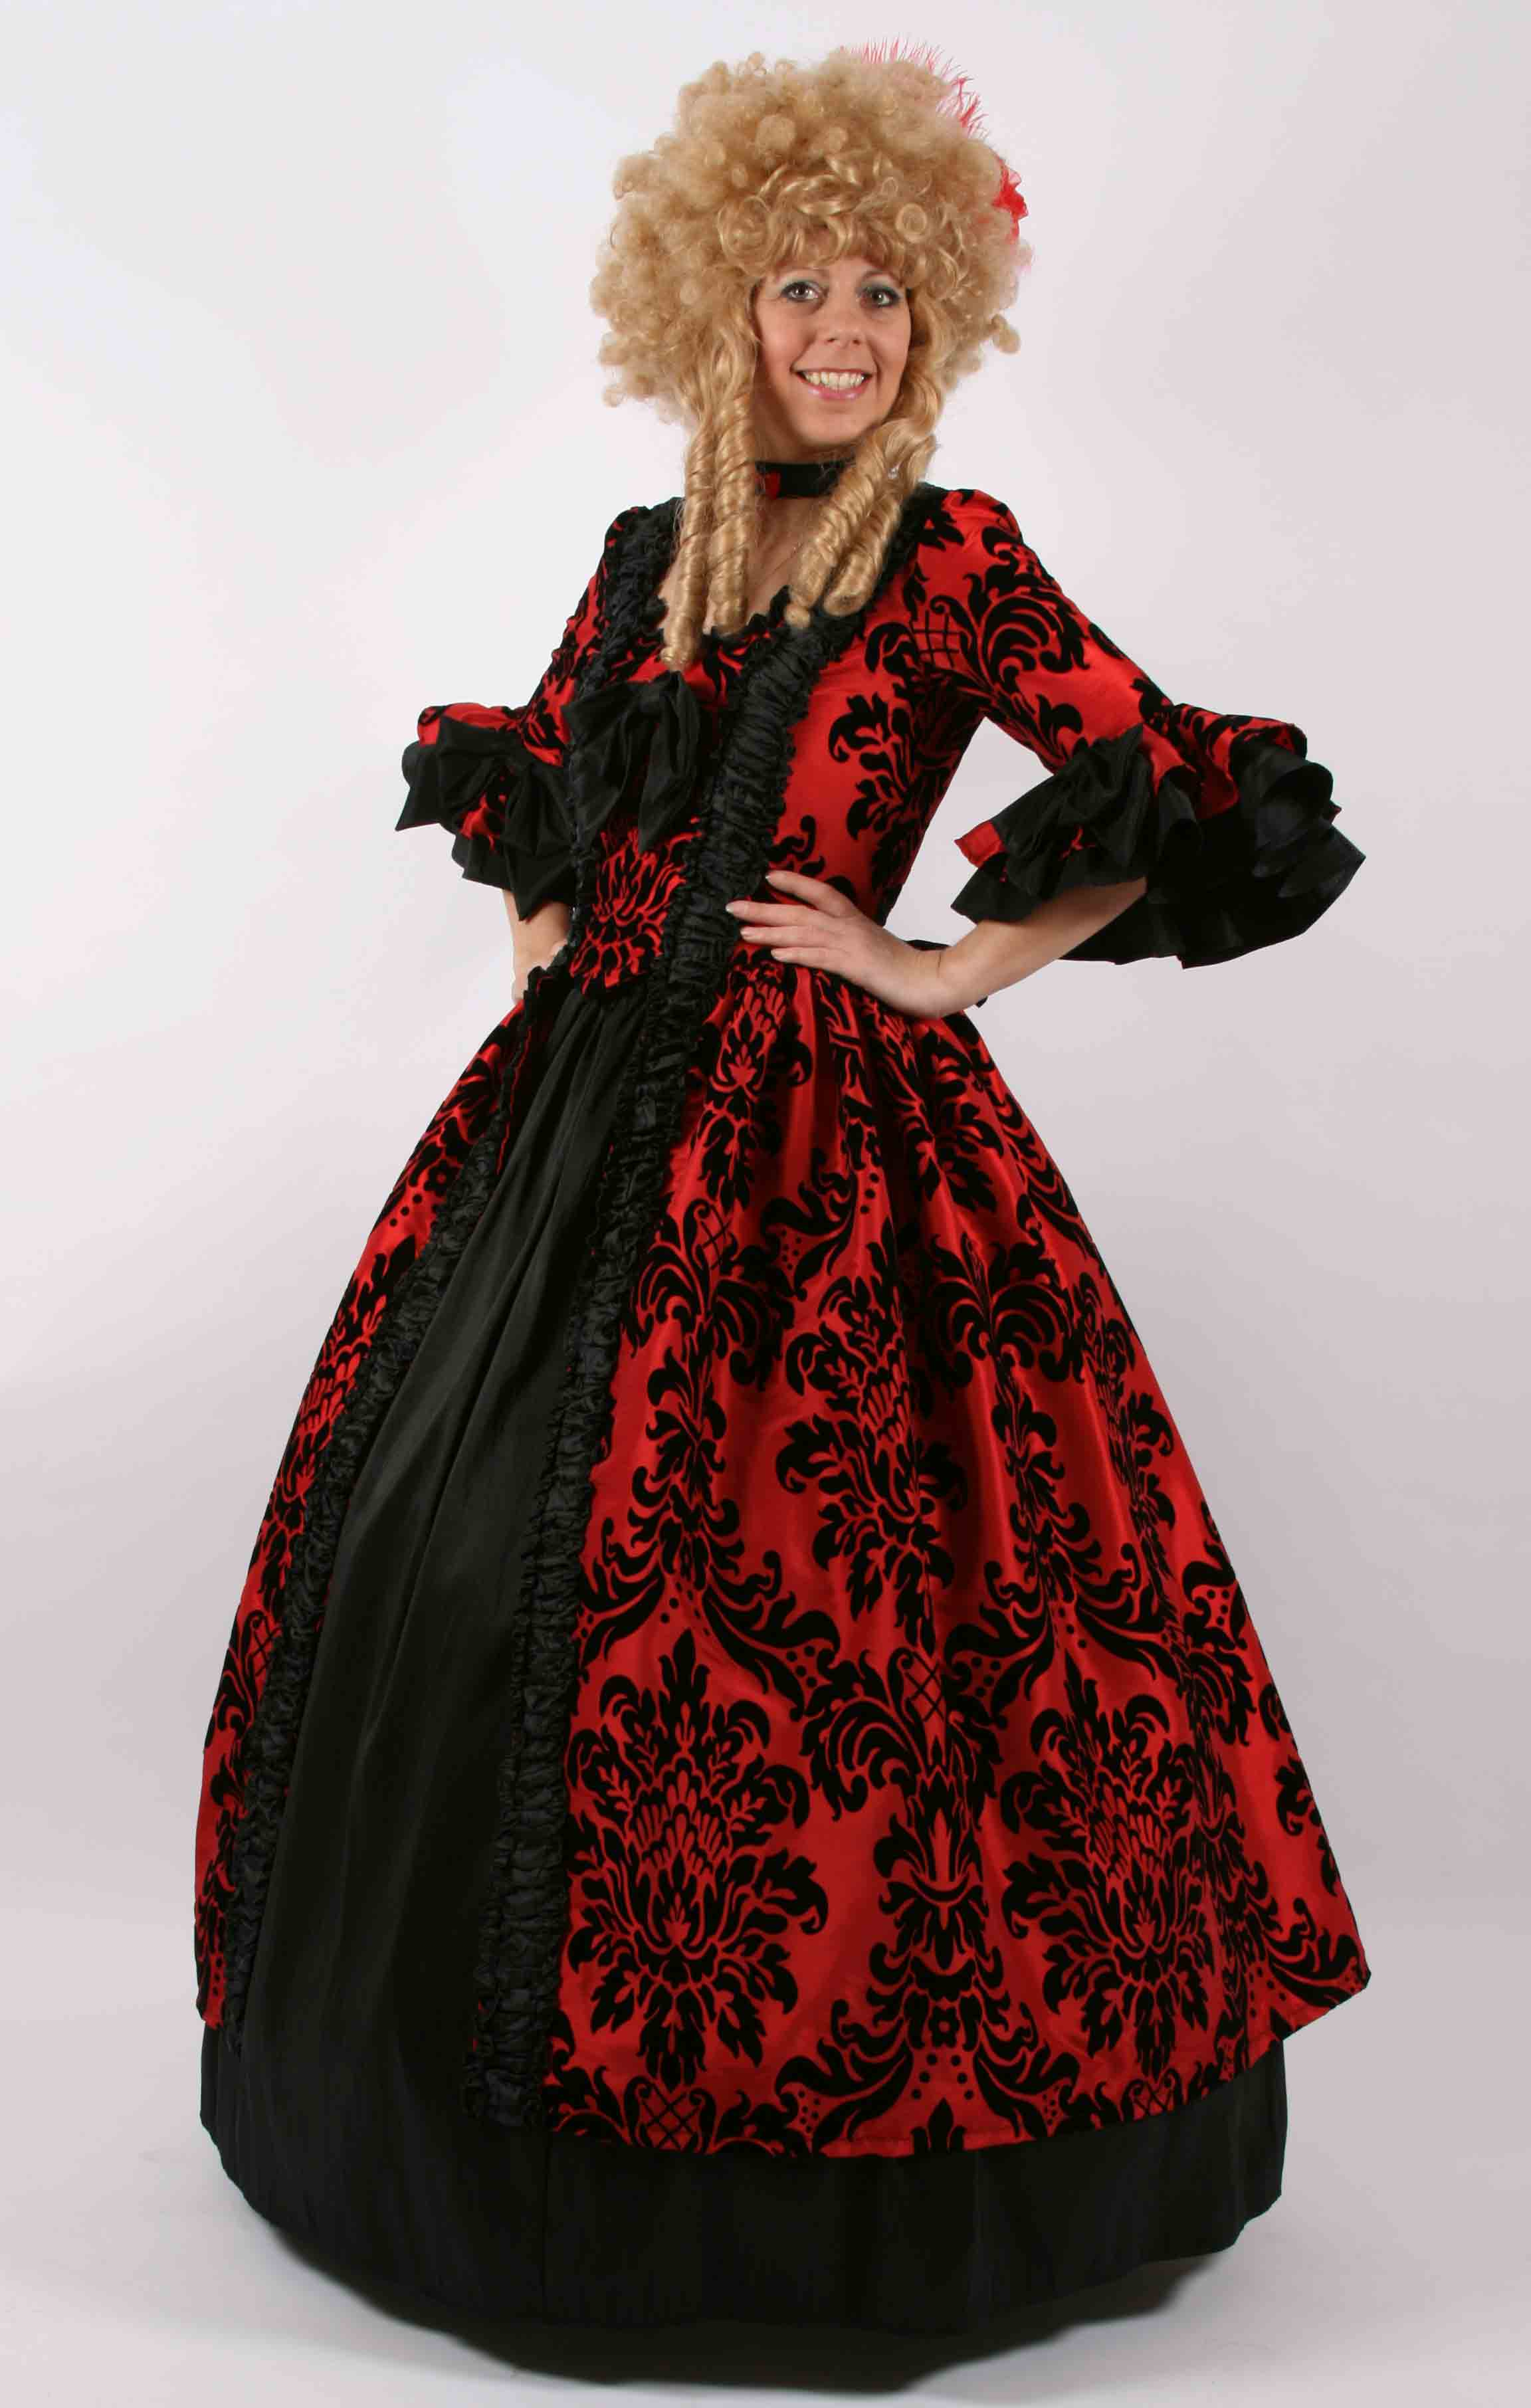 Theatrical quality Georgian and Masquerade costumes for hire